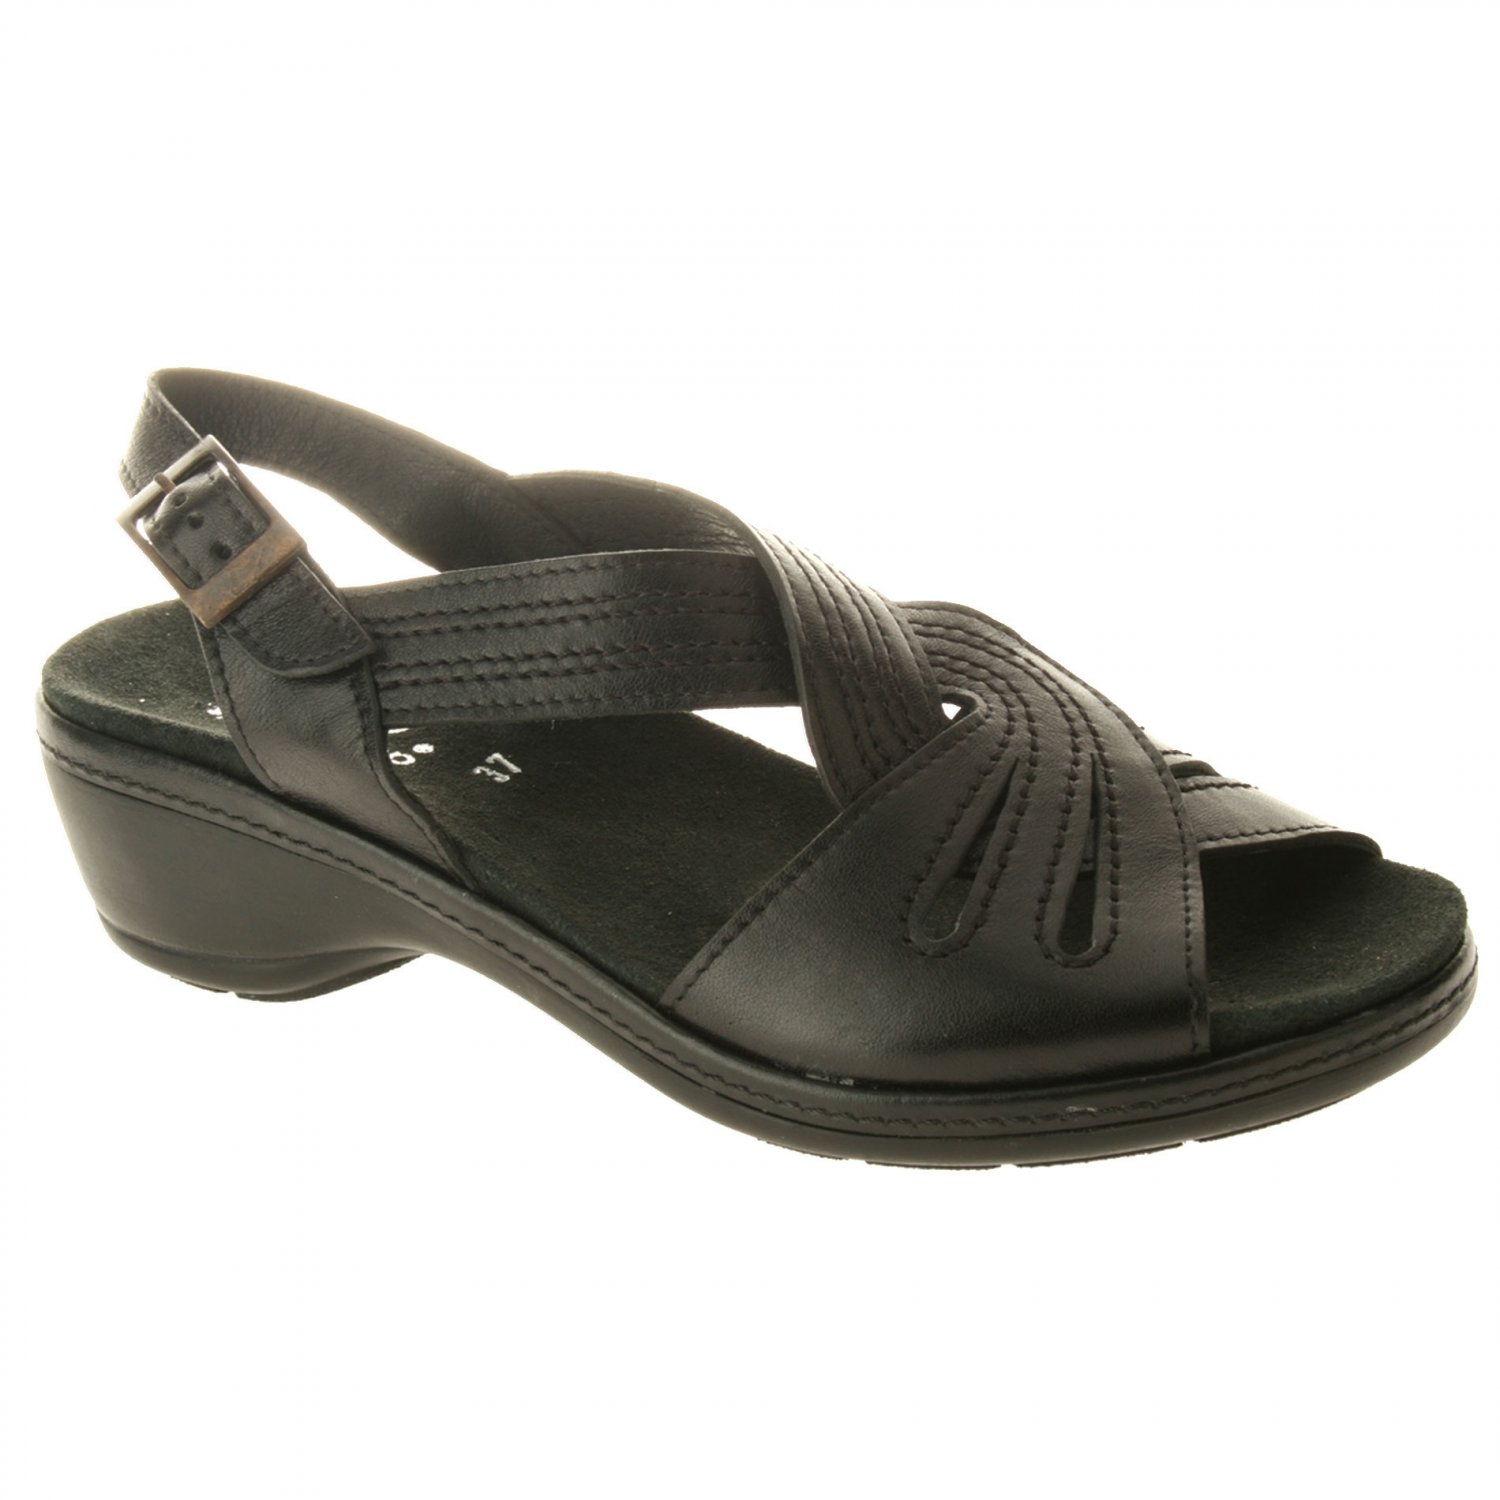 Spring Step PRECIOUS Sandals Shoes All Sizes & Colors